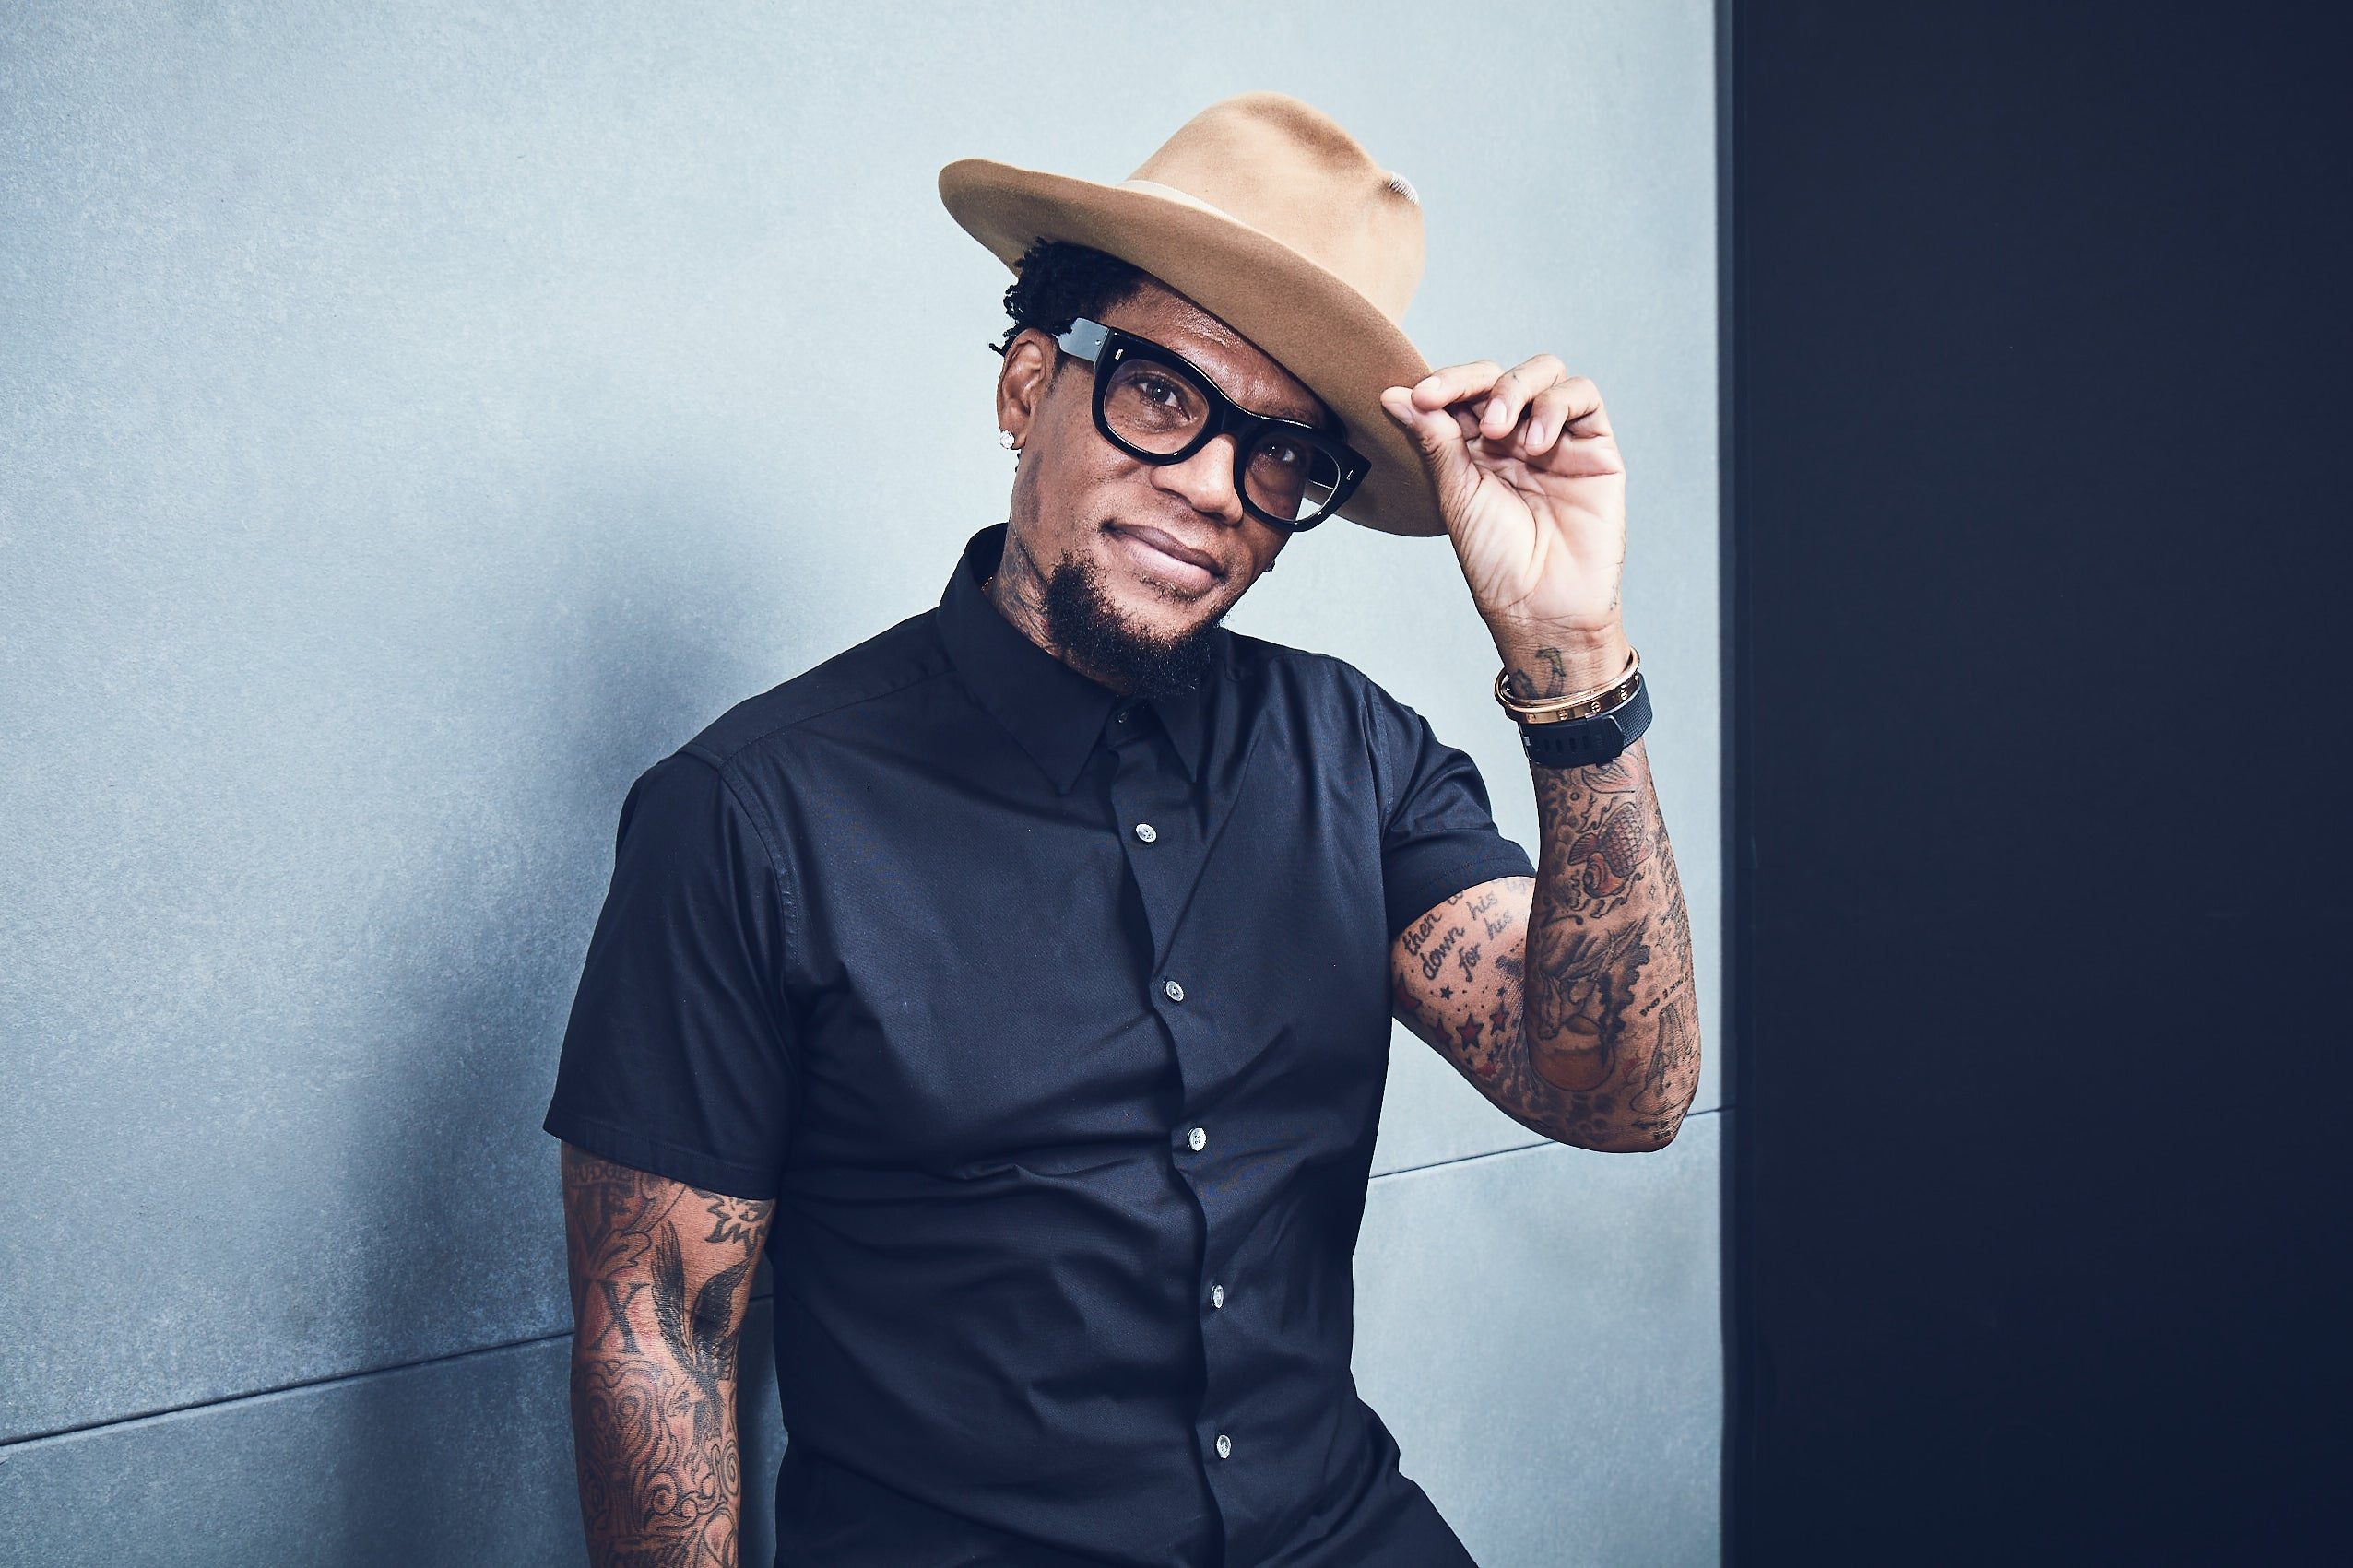 D.L. Hughley Shares How He Really Feels About Black Women: 'I Love You, But It Hurts in the Morning'